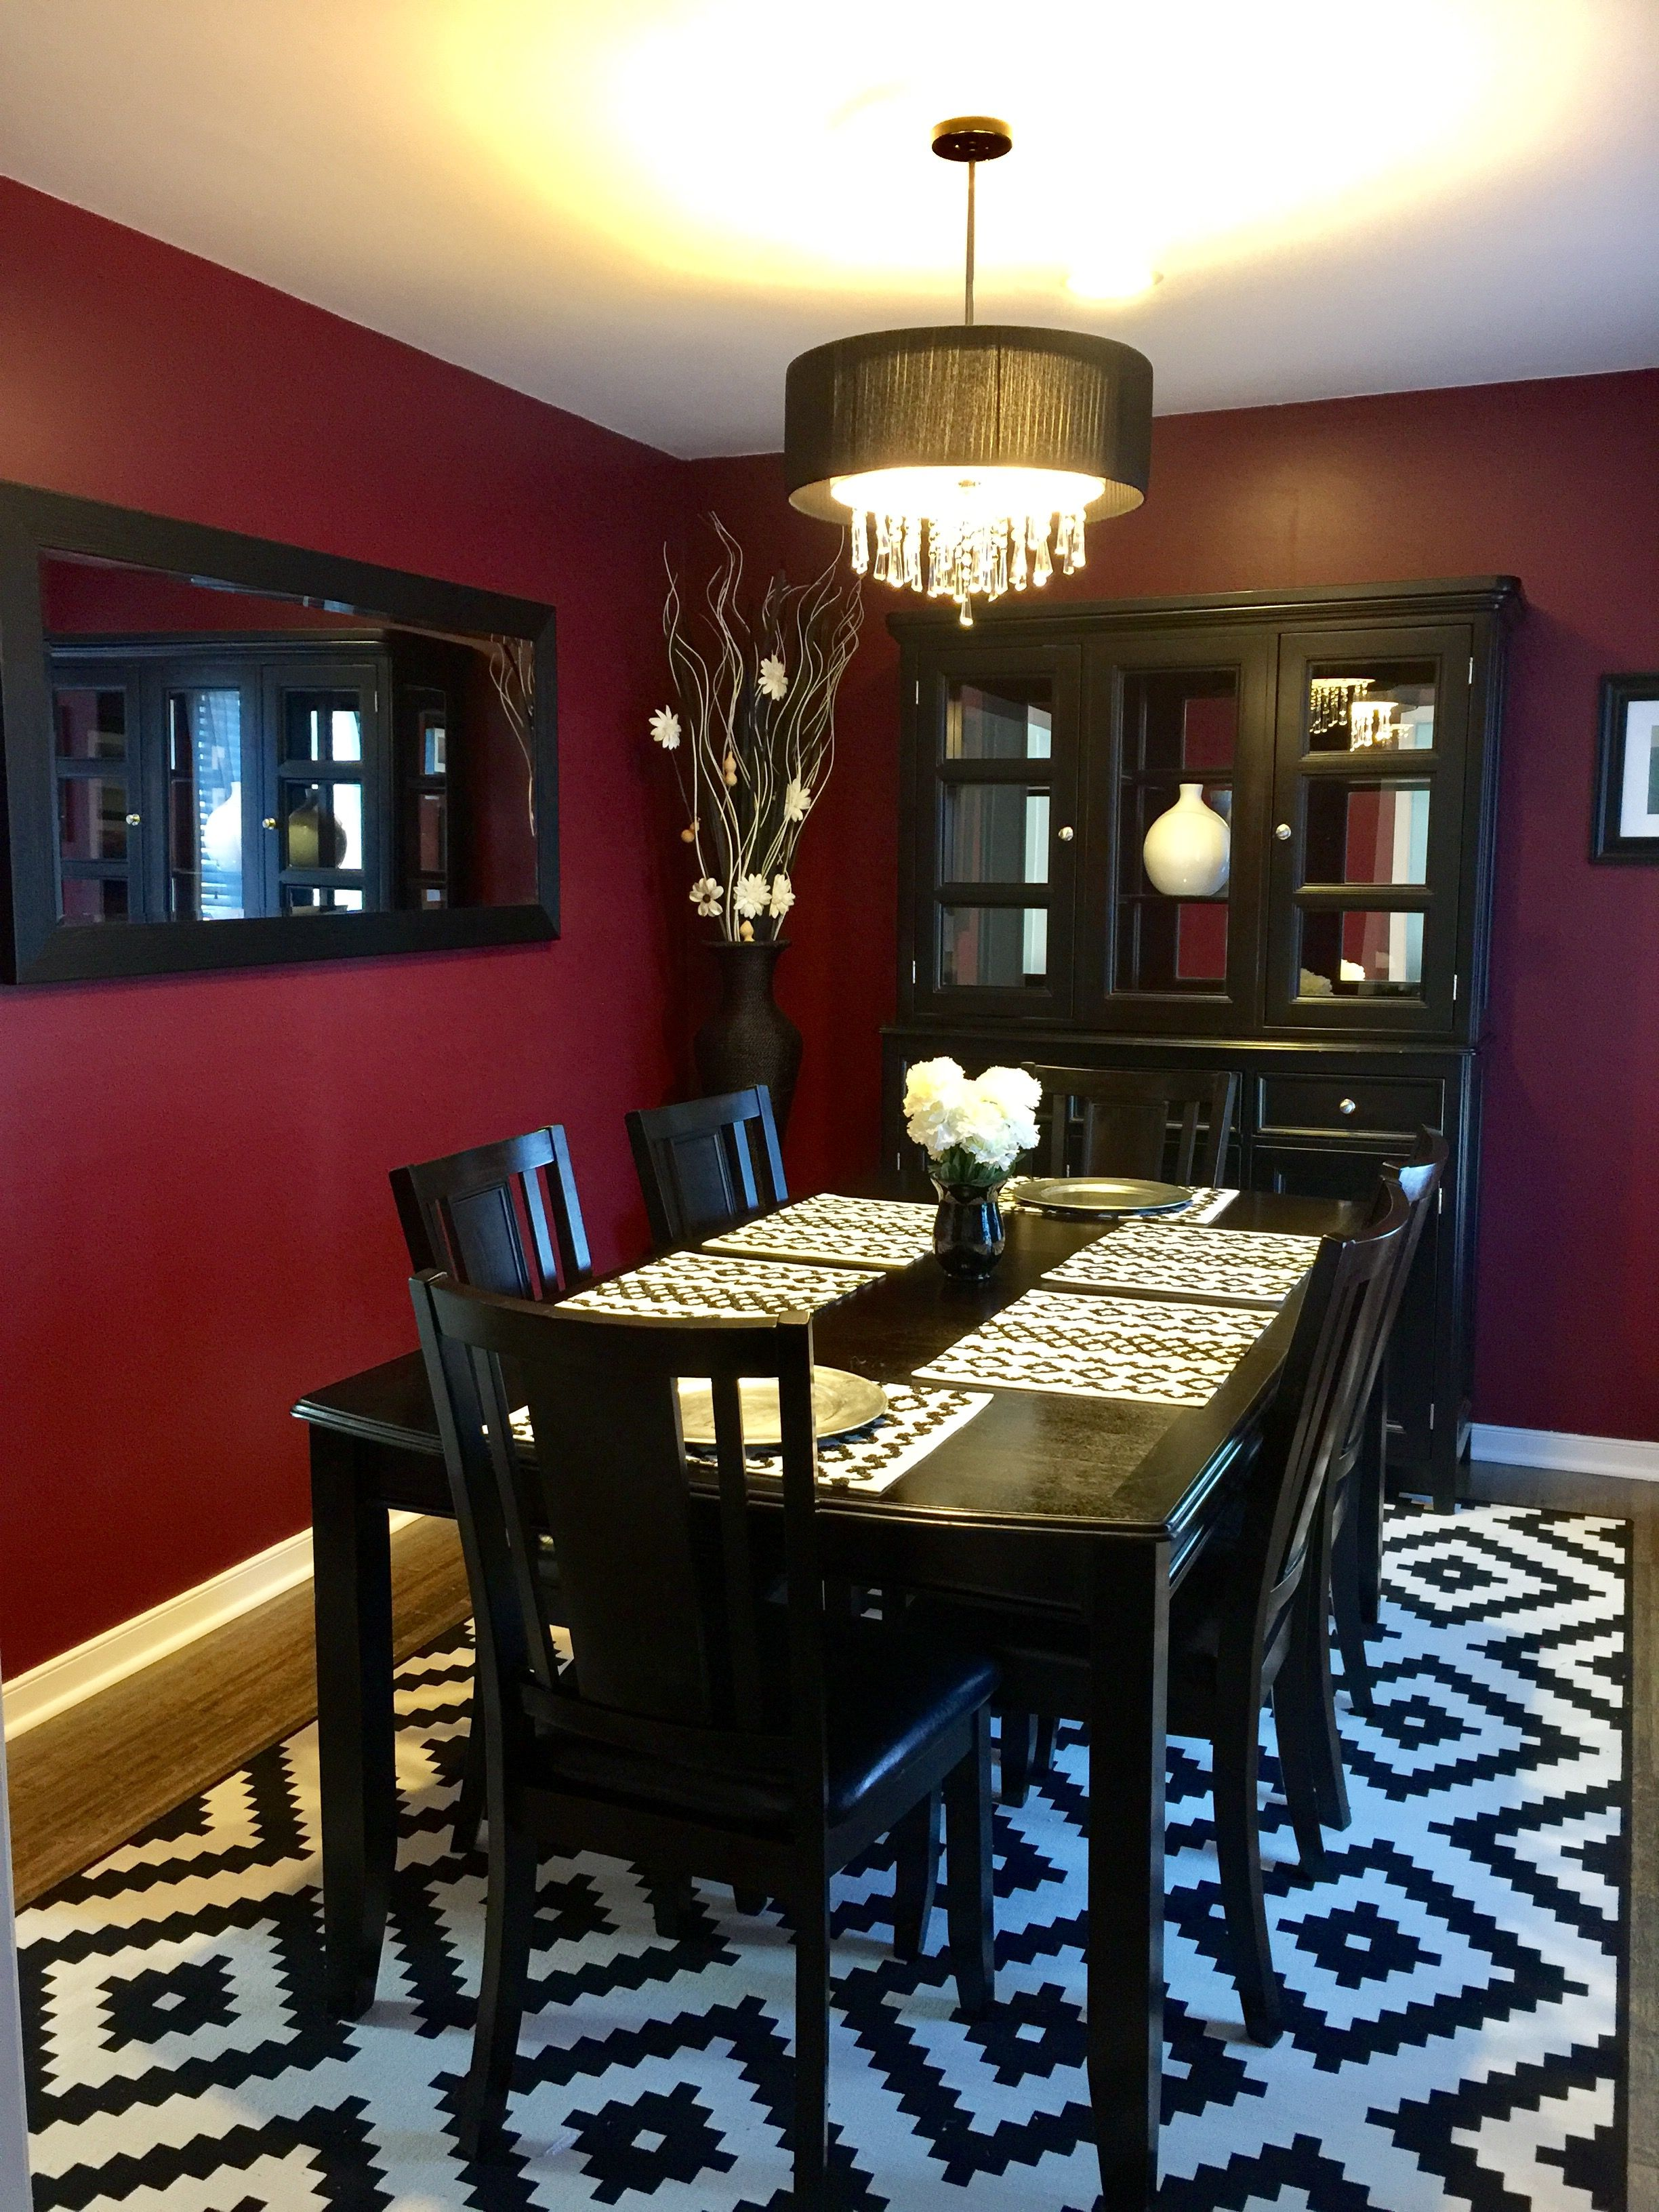 Black White Dining Room With A Pop Of Color On The Walls Beautiful Dining Room Decor Dining Room Table Decor Red Room Decor